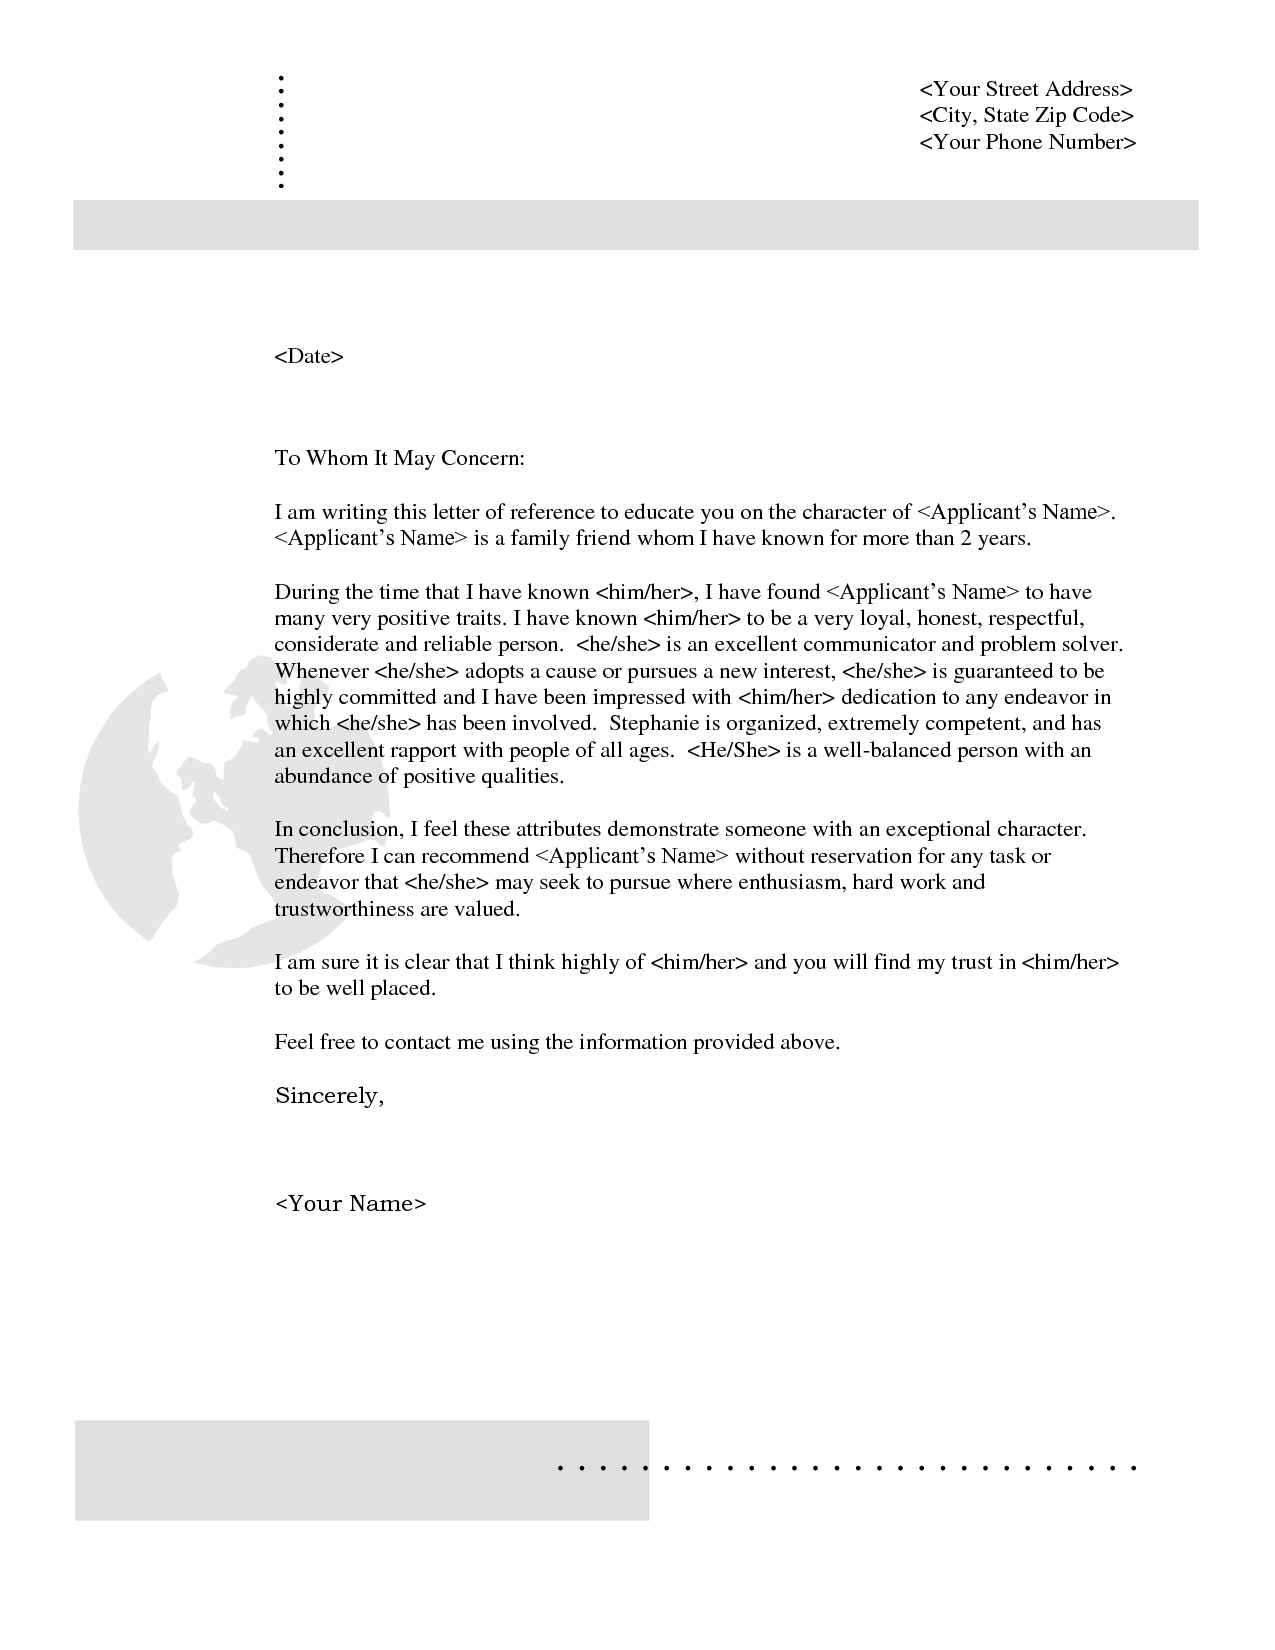 Family letter of recommendation sample selol ink family letter of recommendation sample altavistaventures Gallery